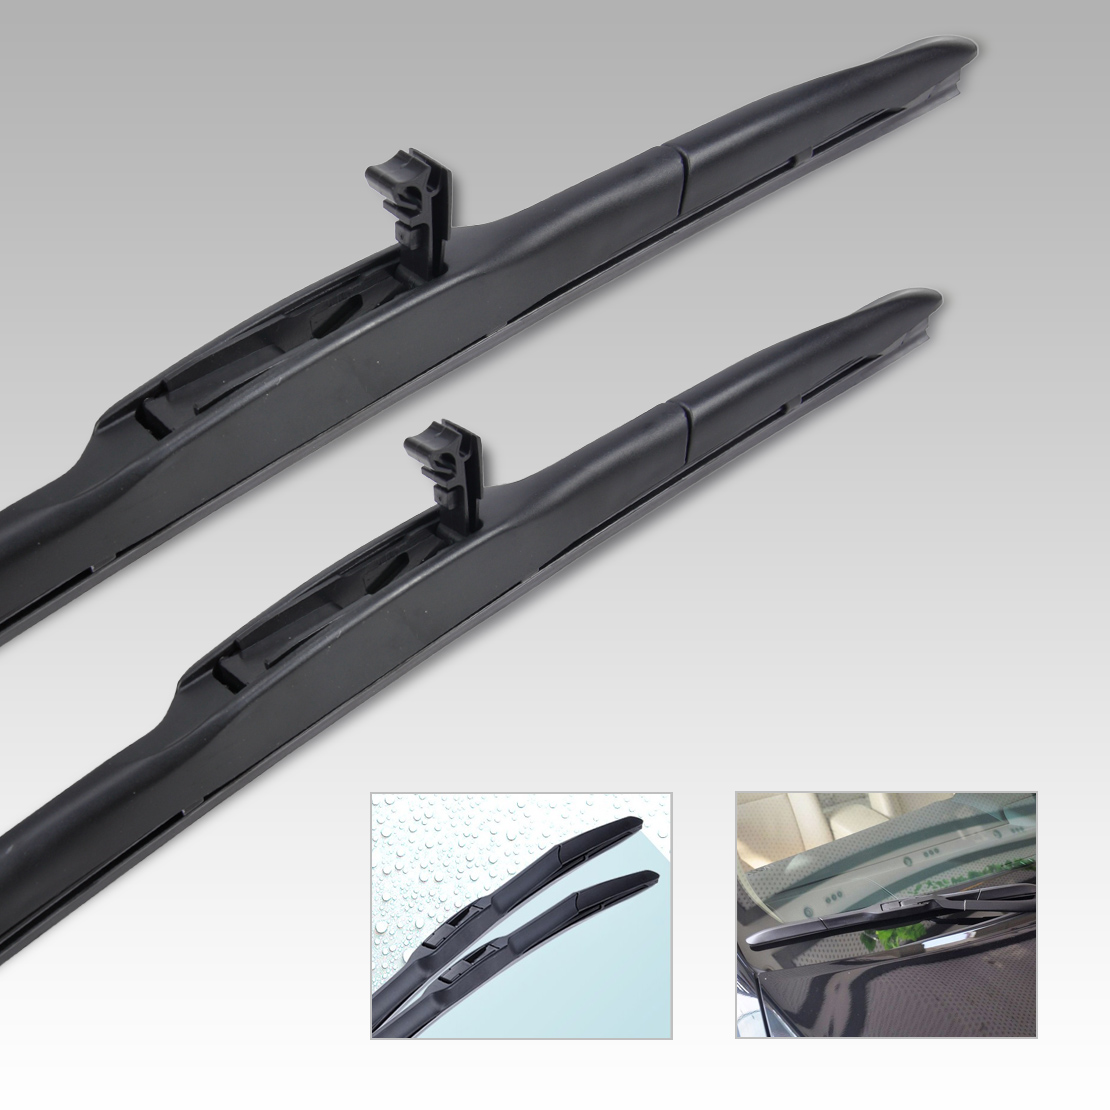 26 14 hybrid 3 section window windshield wiper blade for toyota corolla 200. Black Bedroom Furniture Sets. Home Design Ideas